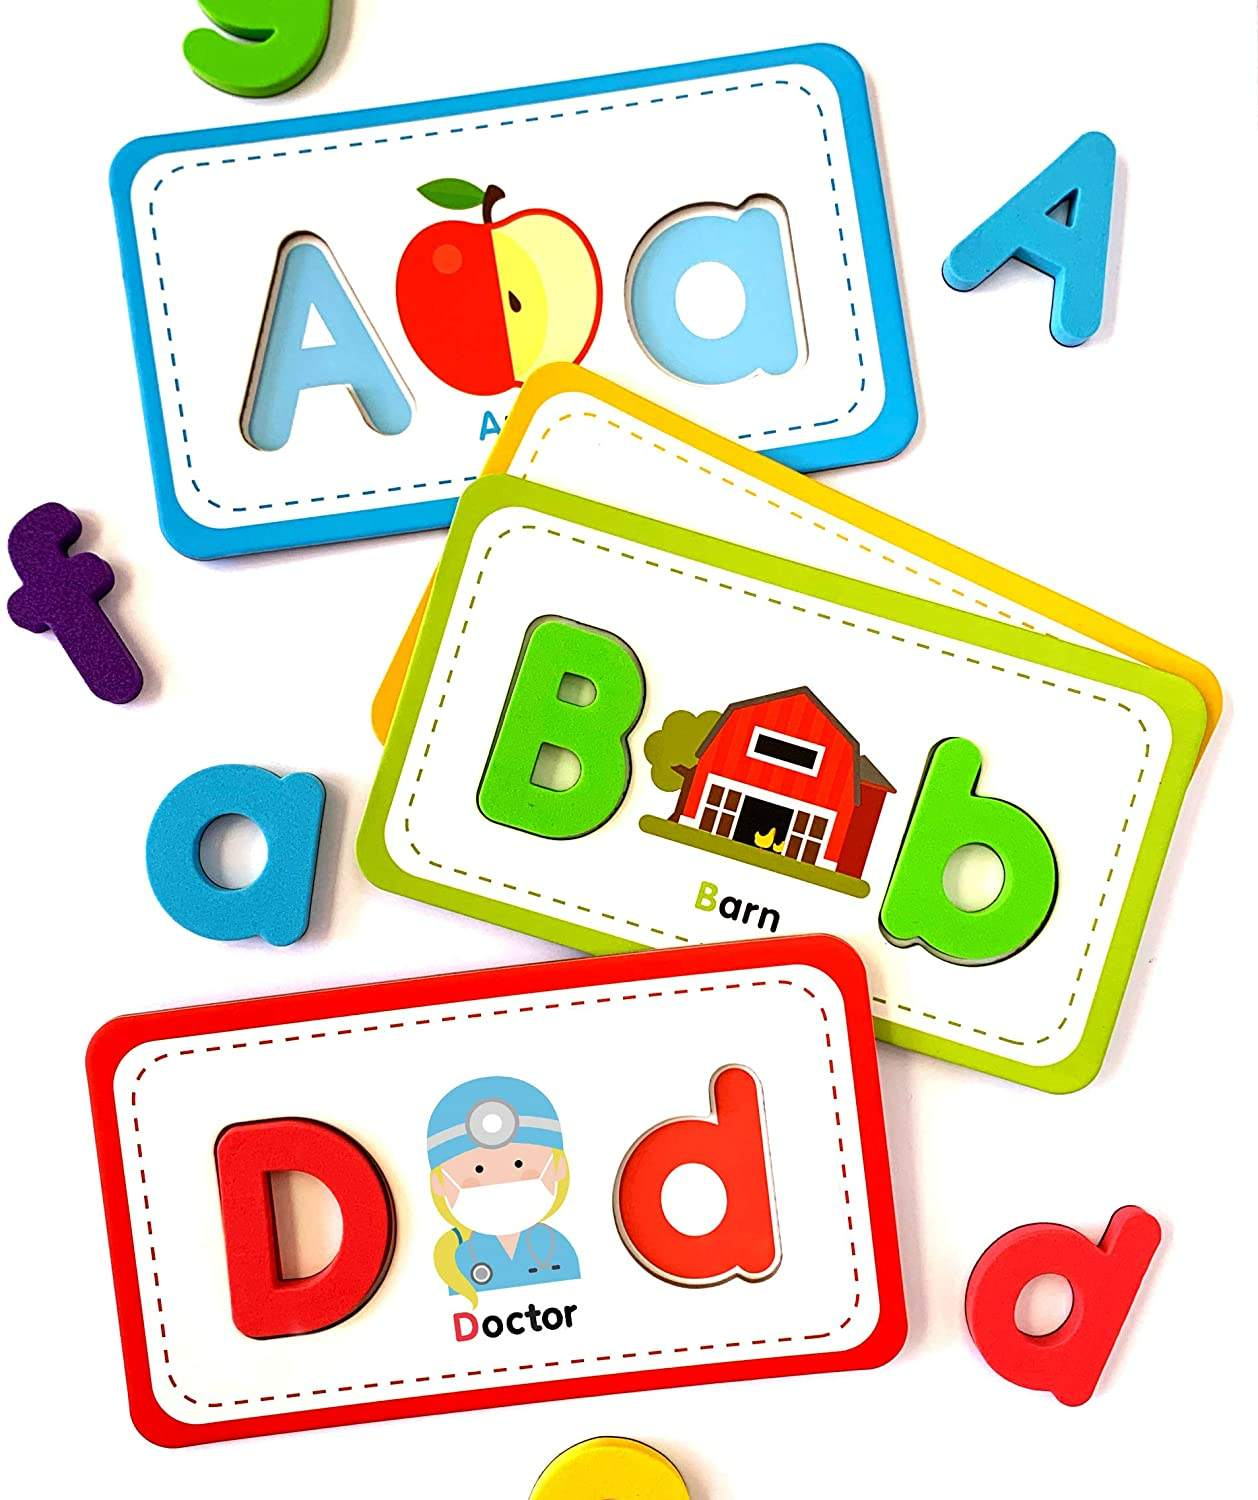 Magnet Flashcards and Foam Letter Set Toddler Games to Learn to Read, Spell and Practice Phonics.